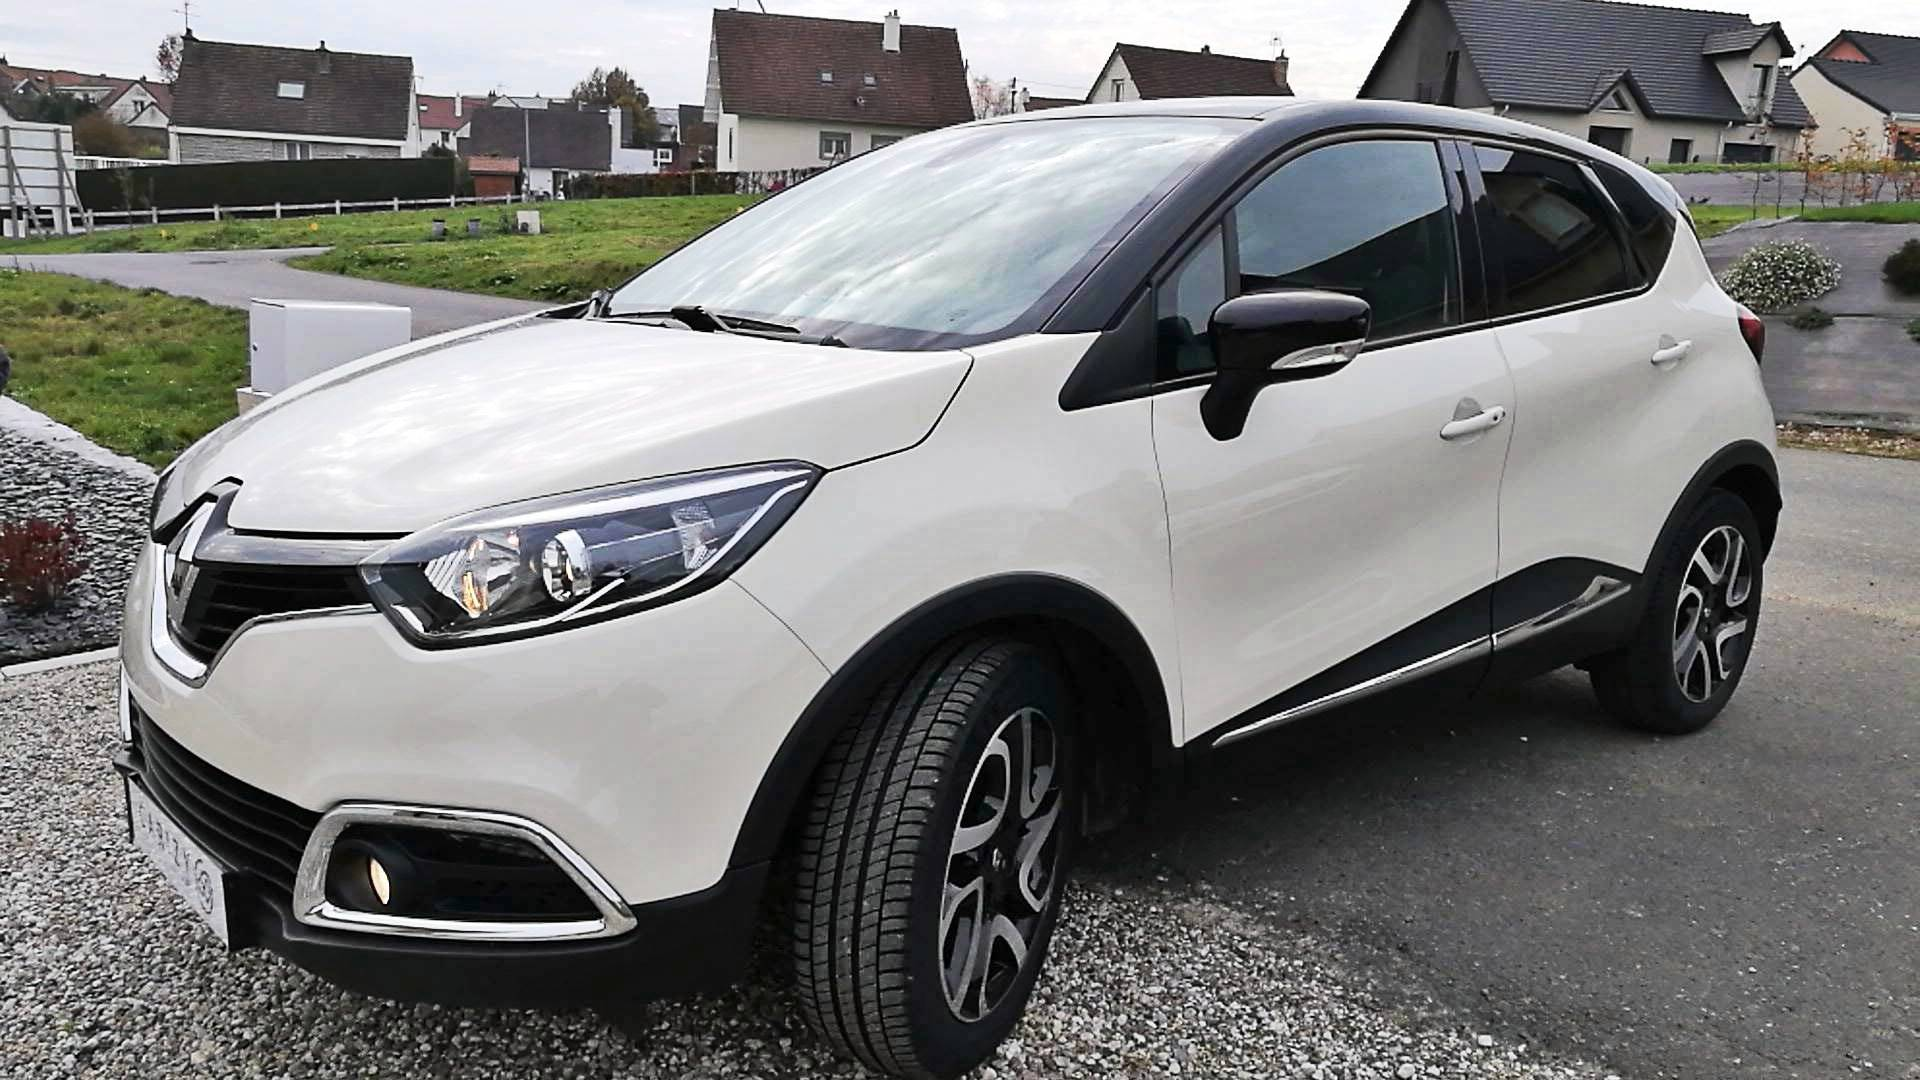 renault captur d 39 occasion 1 5 dci 90 energy intens start stop le havre carizy. Black Bedroom Furniture Sets. Home Design Ideas